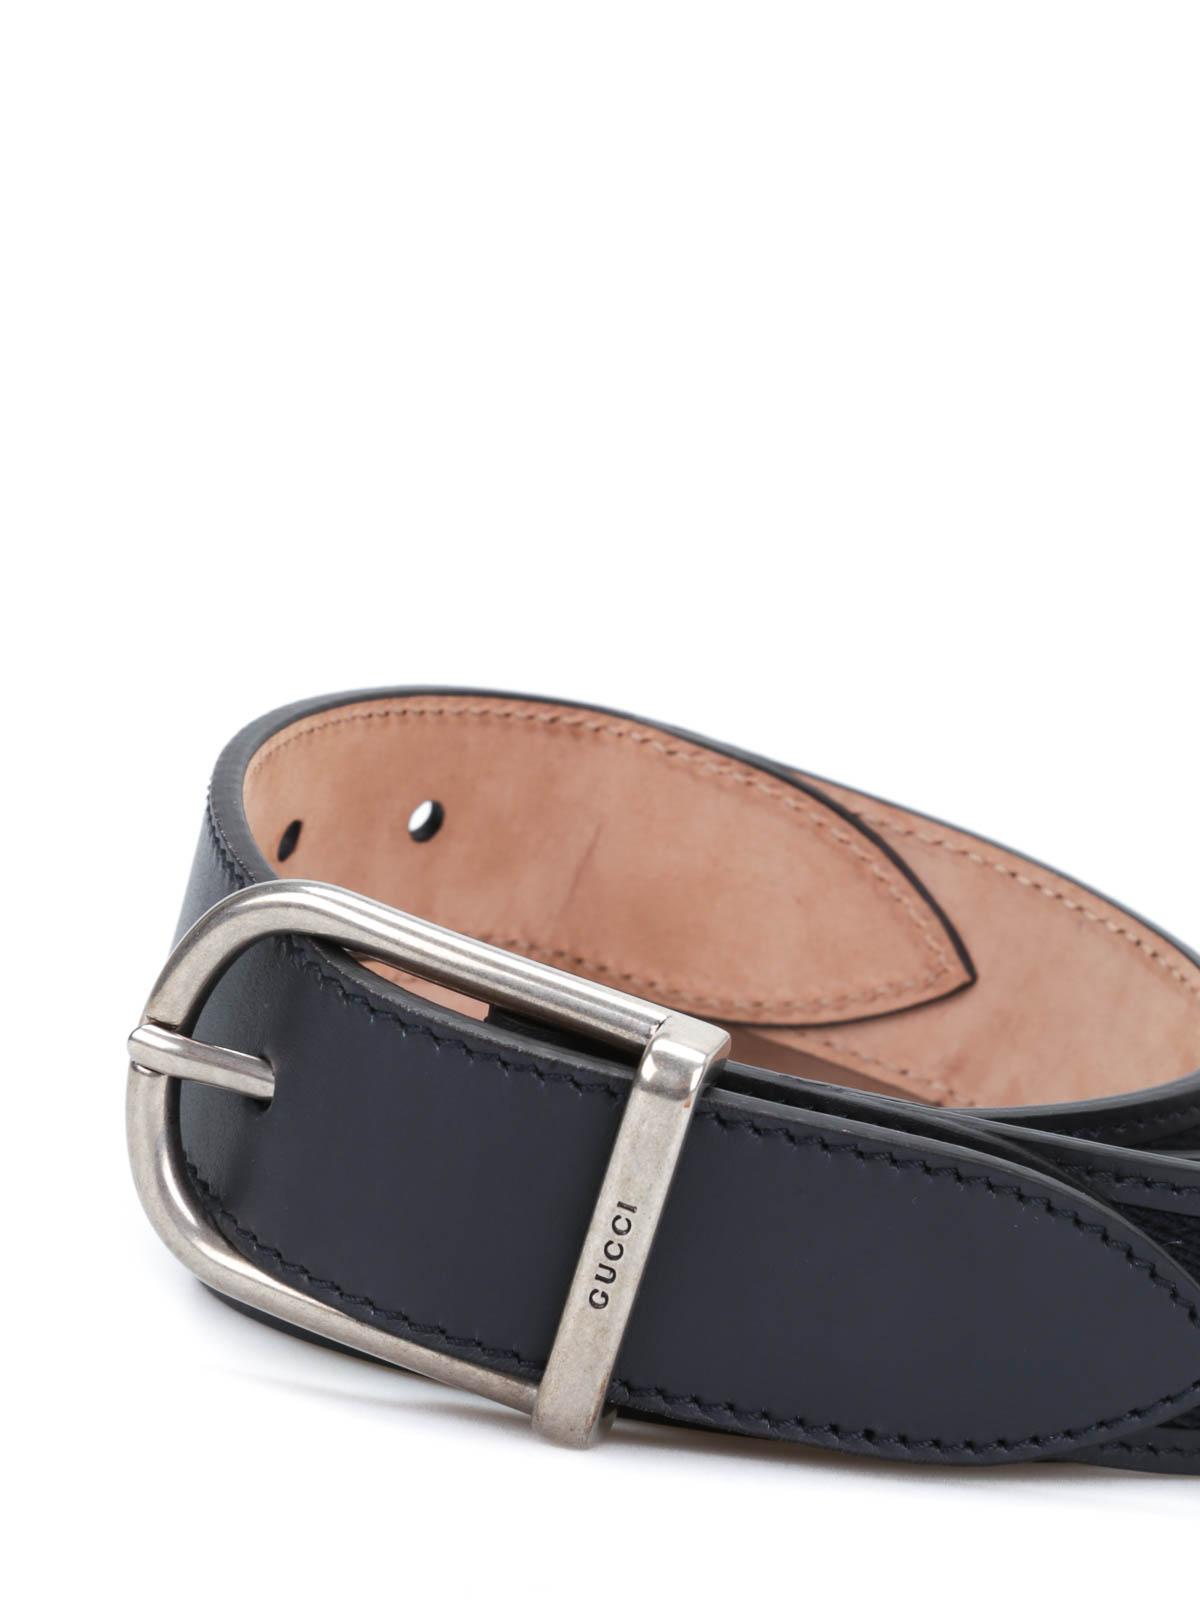 837eaa661 Gucci - Nylon web leather belt with buckle - belts - 368189 BGHUN 8497